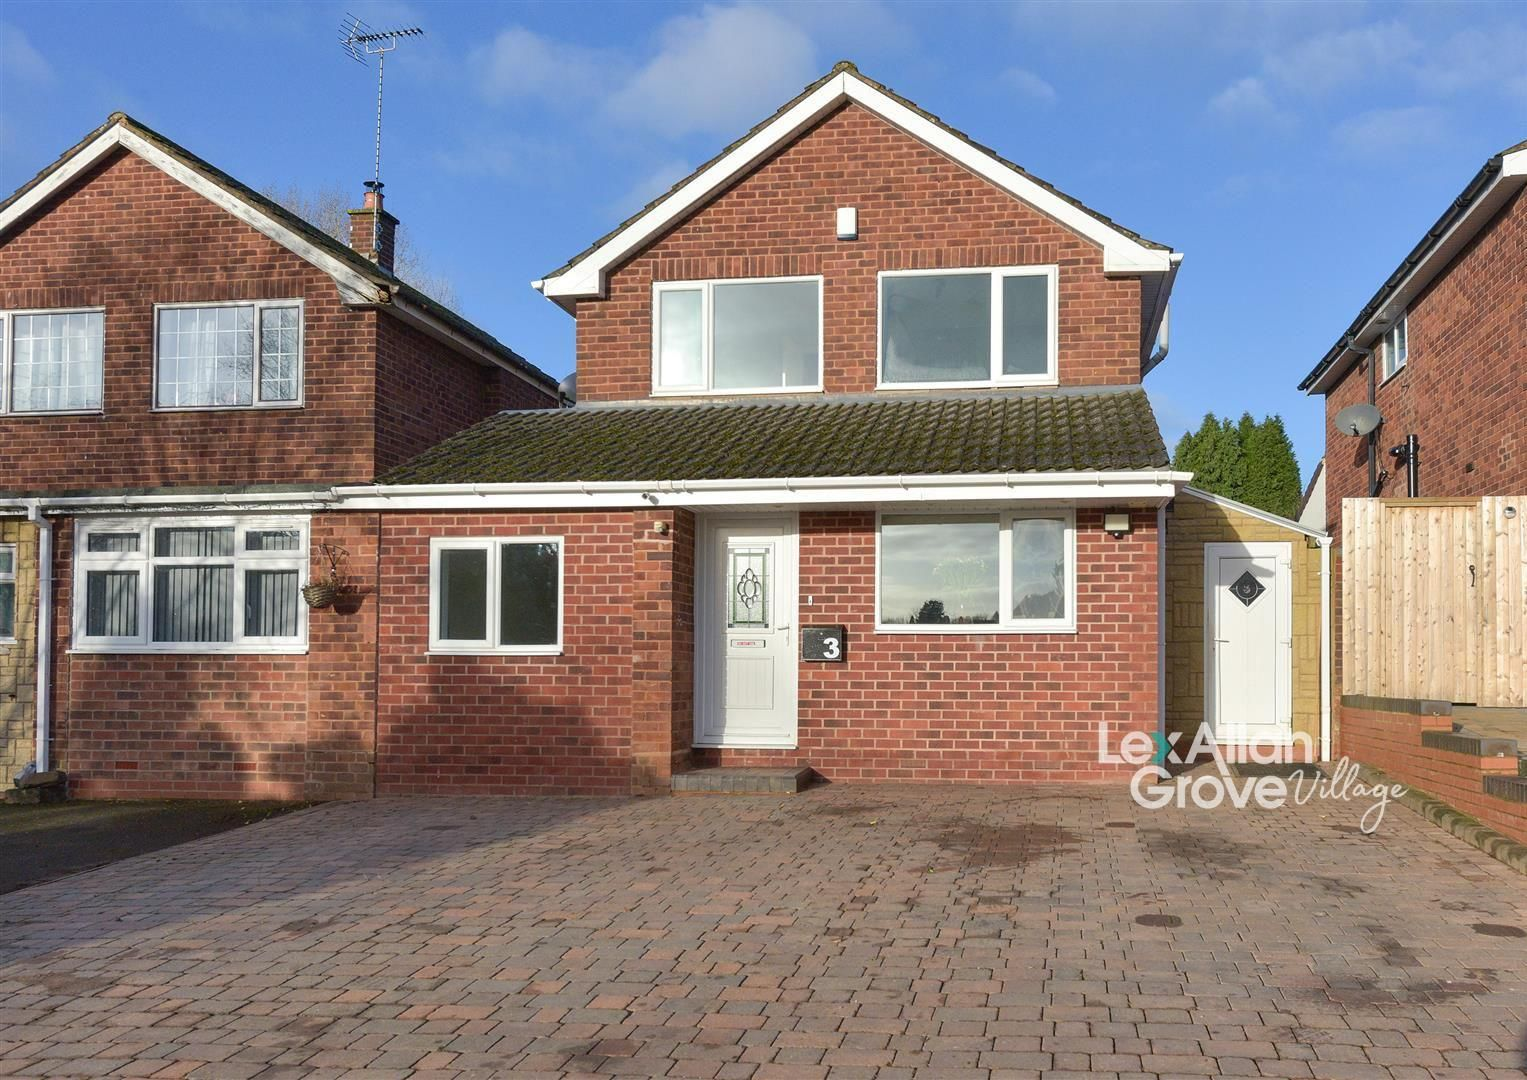 4 bed link-detached-house for sale in Hagley, DY9